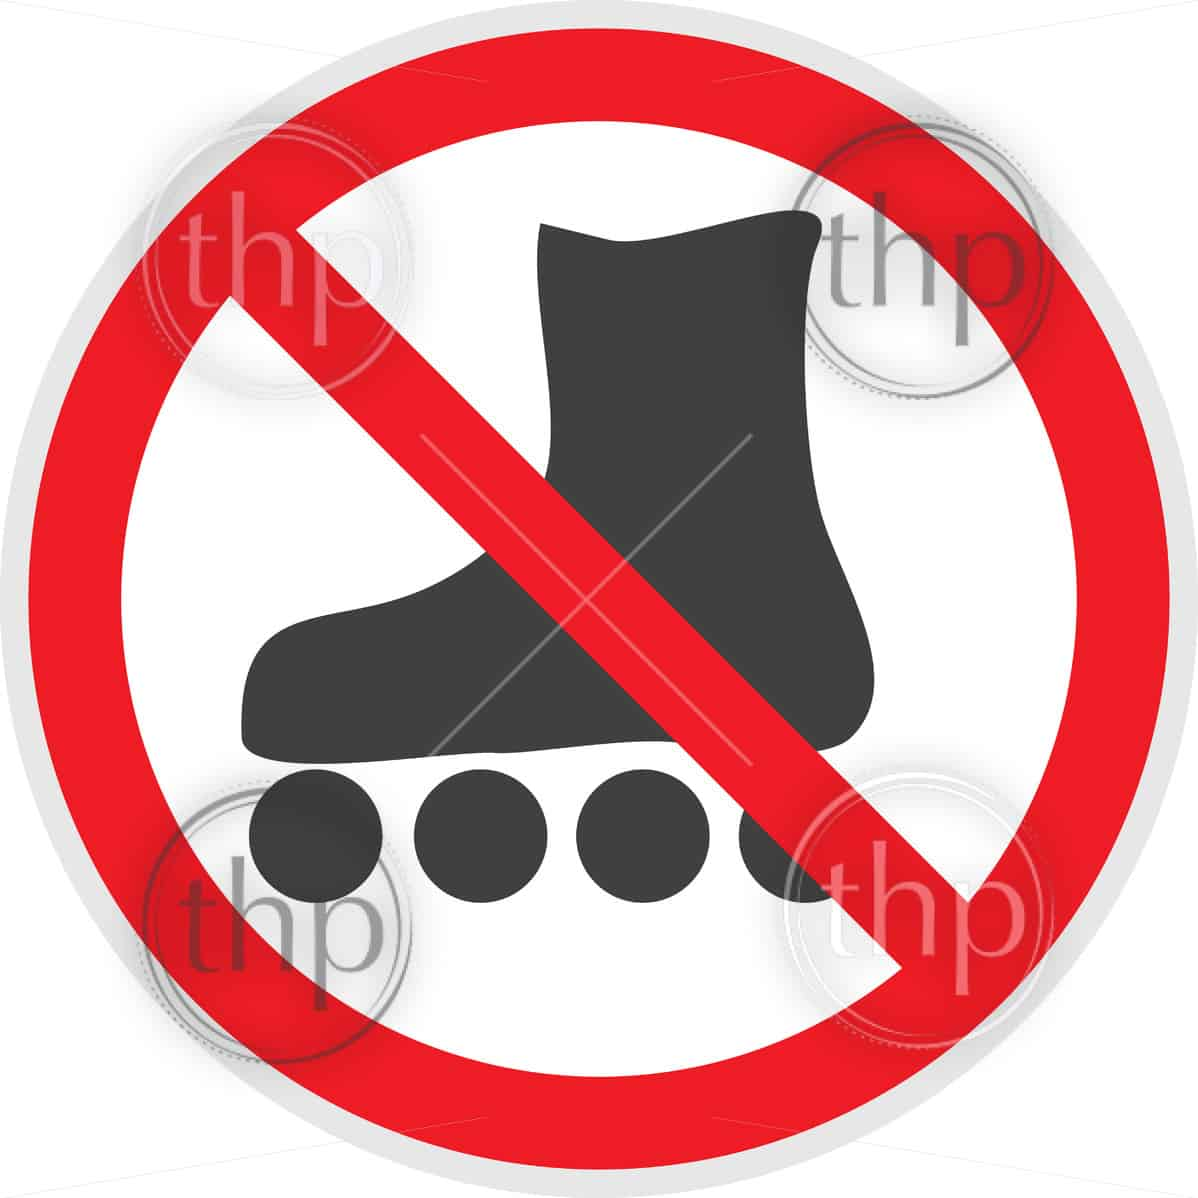 No rollerblades sign in vector depicting banned activities